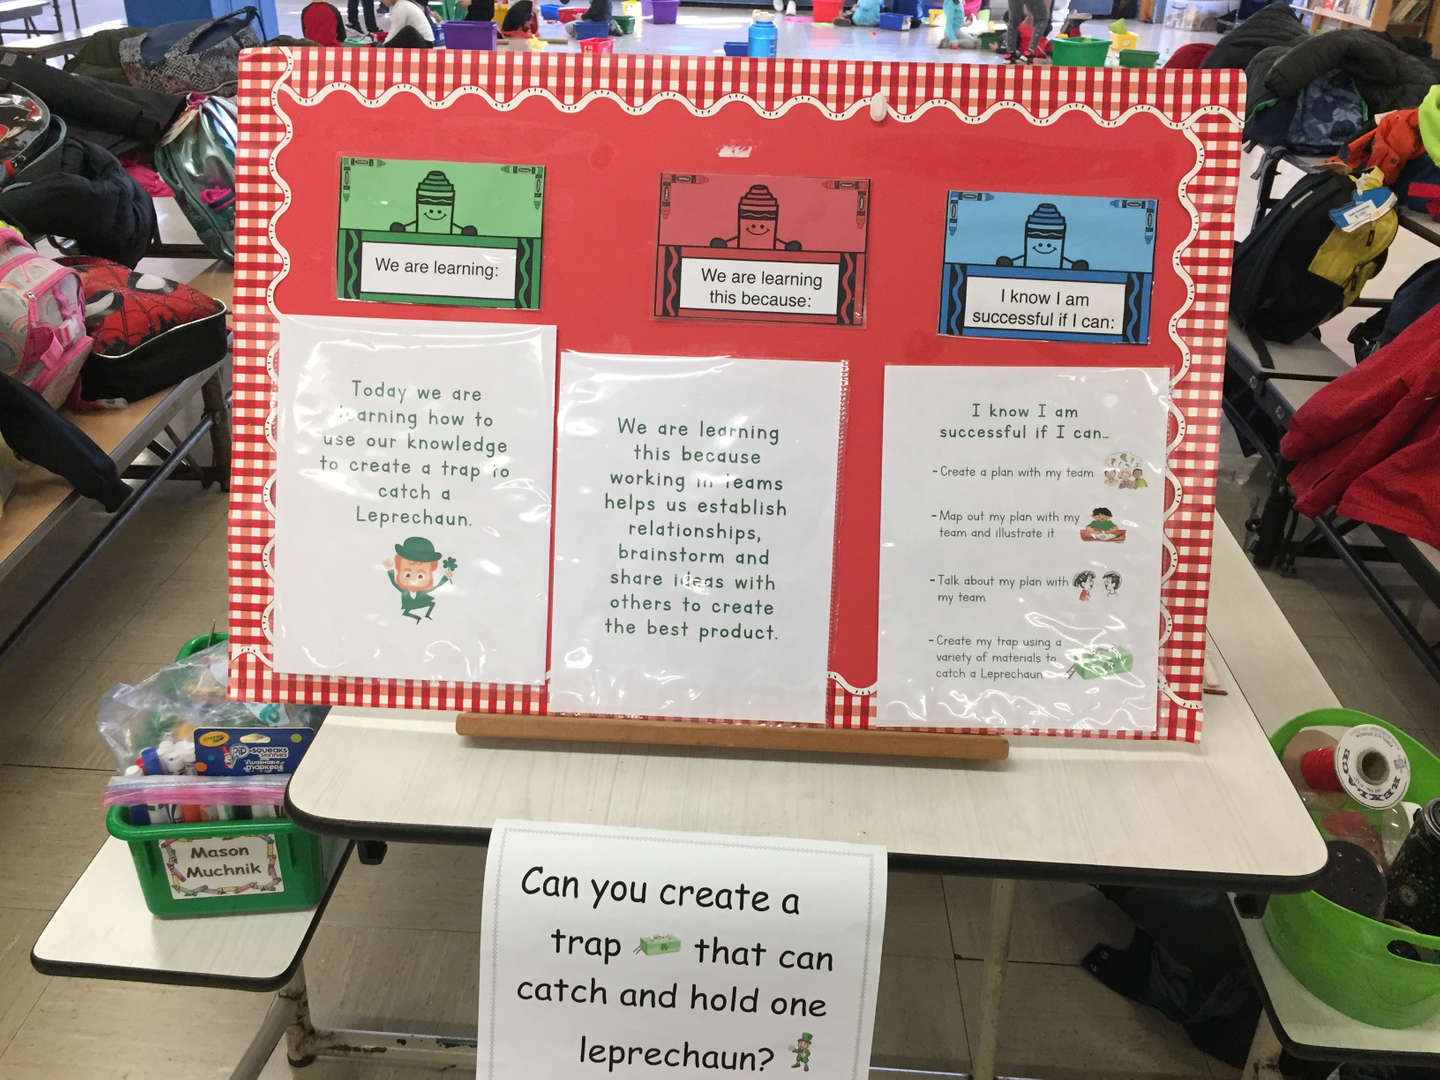 The project for catching leprechauns